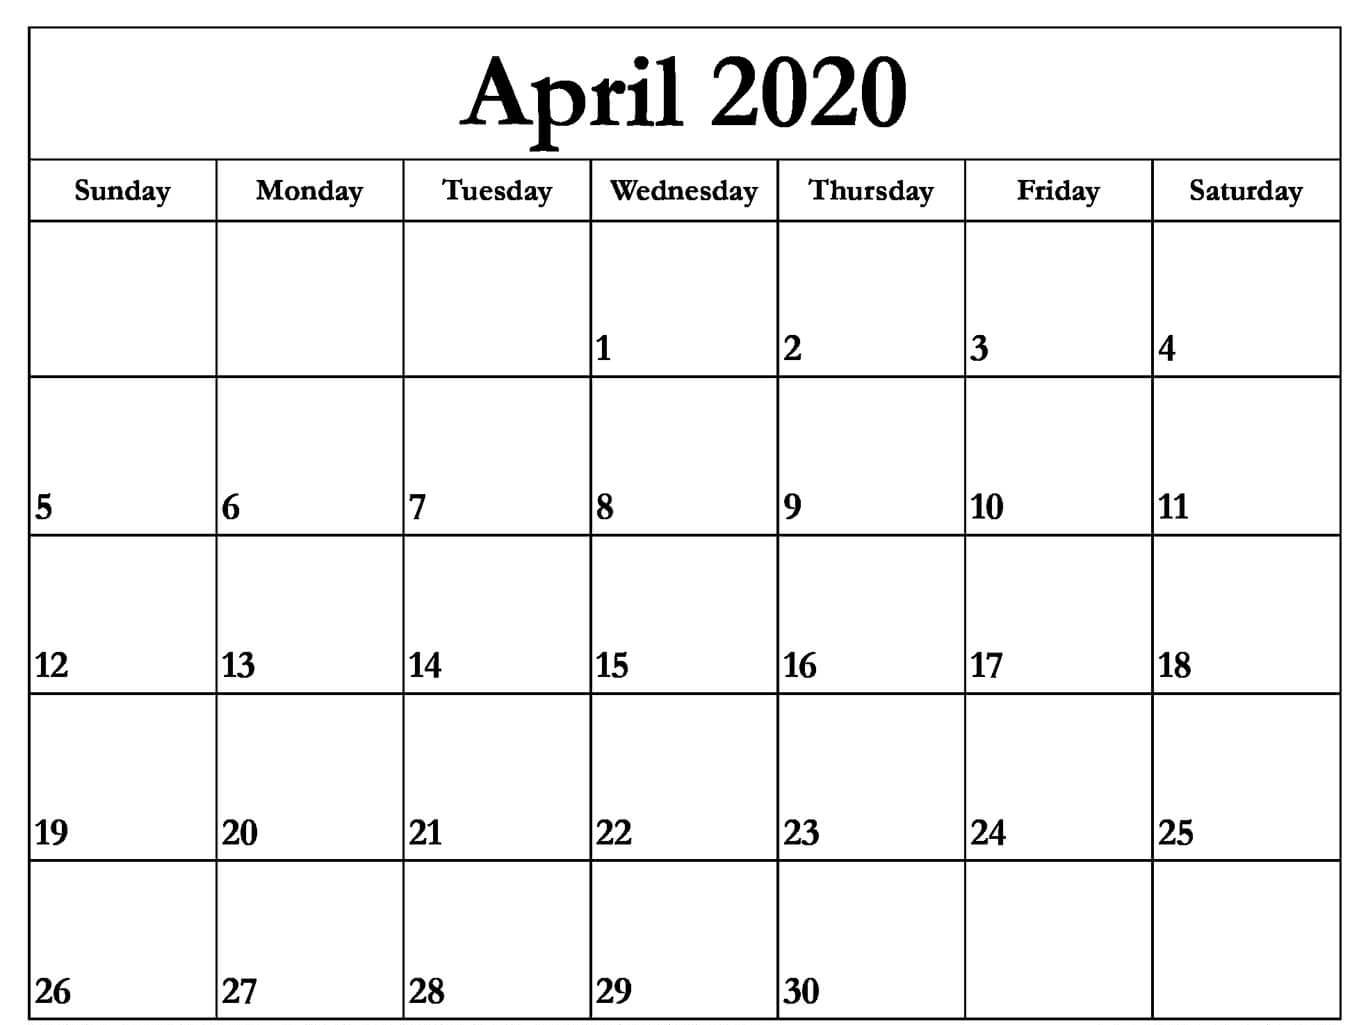 April 2020 Calendar with Holidays UK